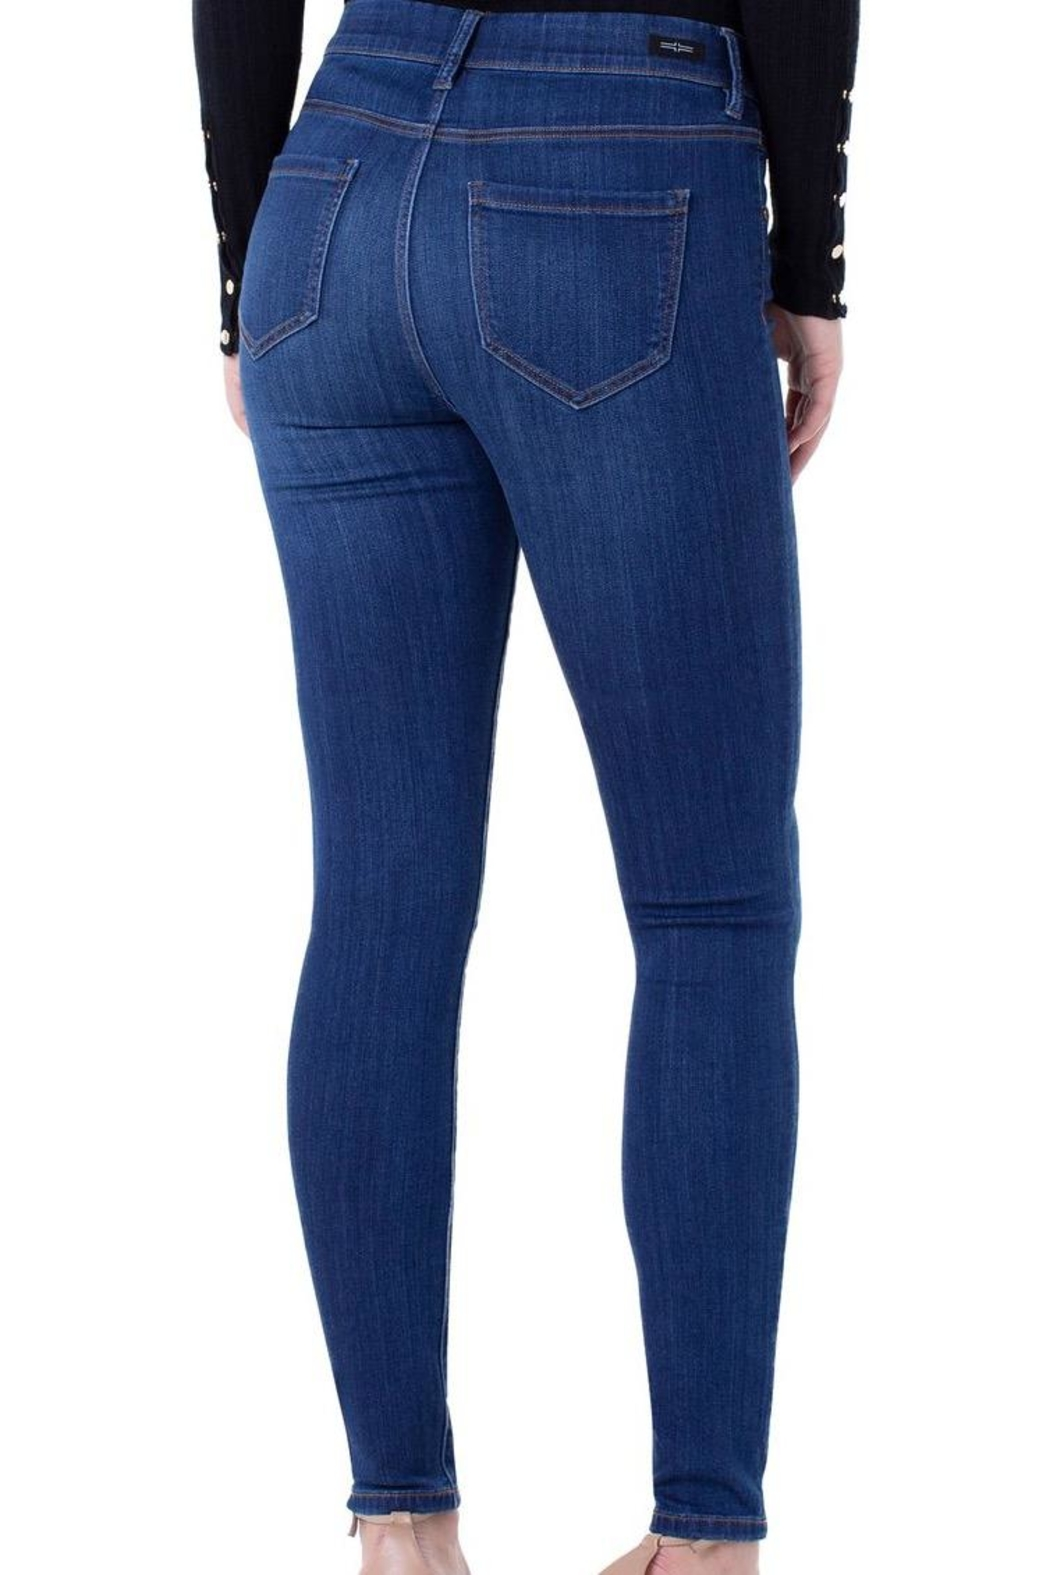 Liverpool Jeans Company Pull-On Denim Jeans - Front Full Image